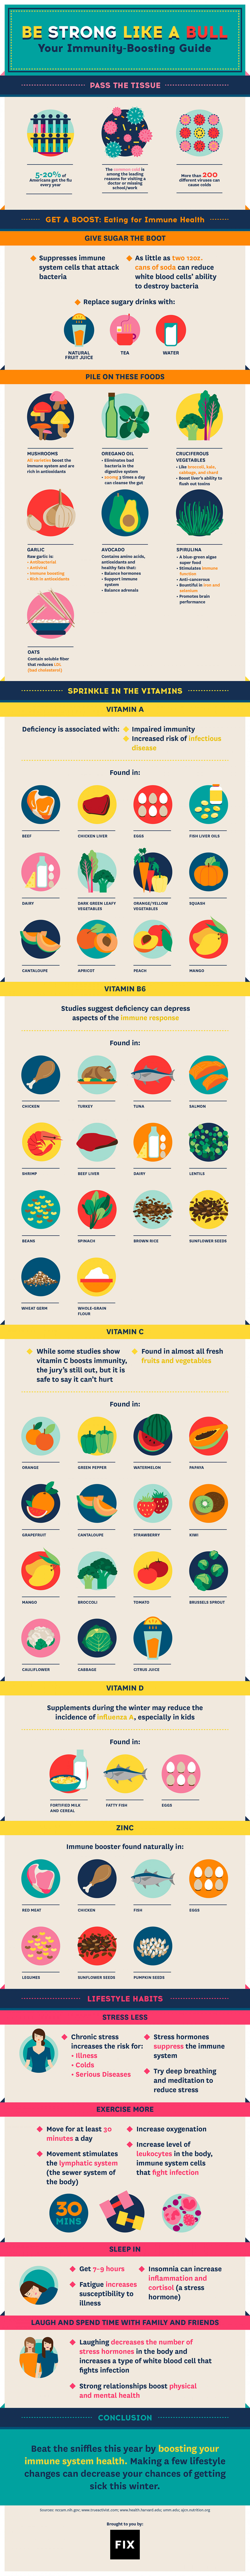 Be Strong Like a Bull: Your Immunity Boosting Guide Infographic